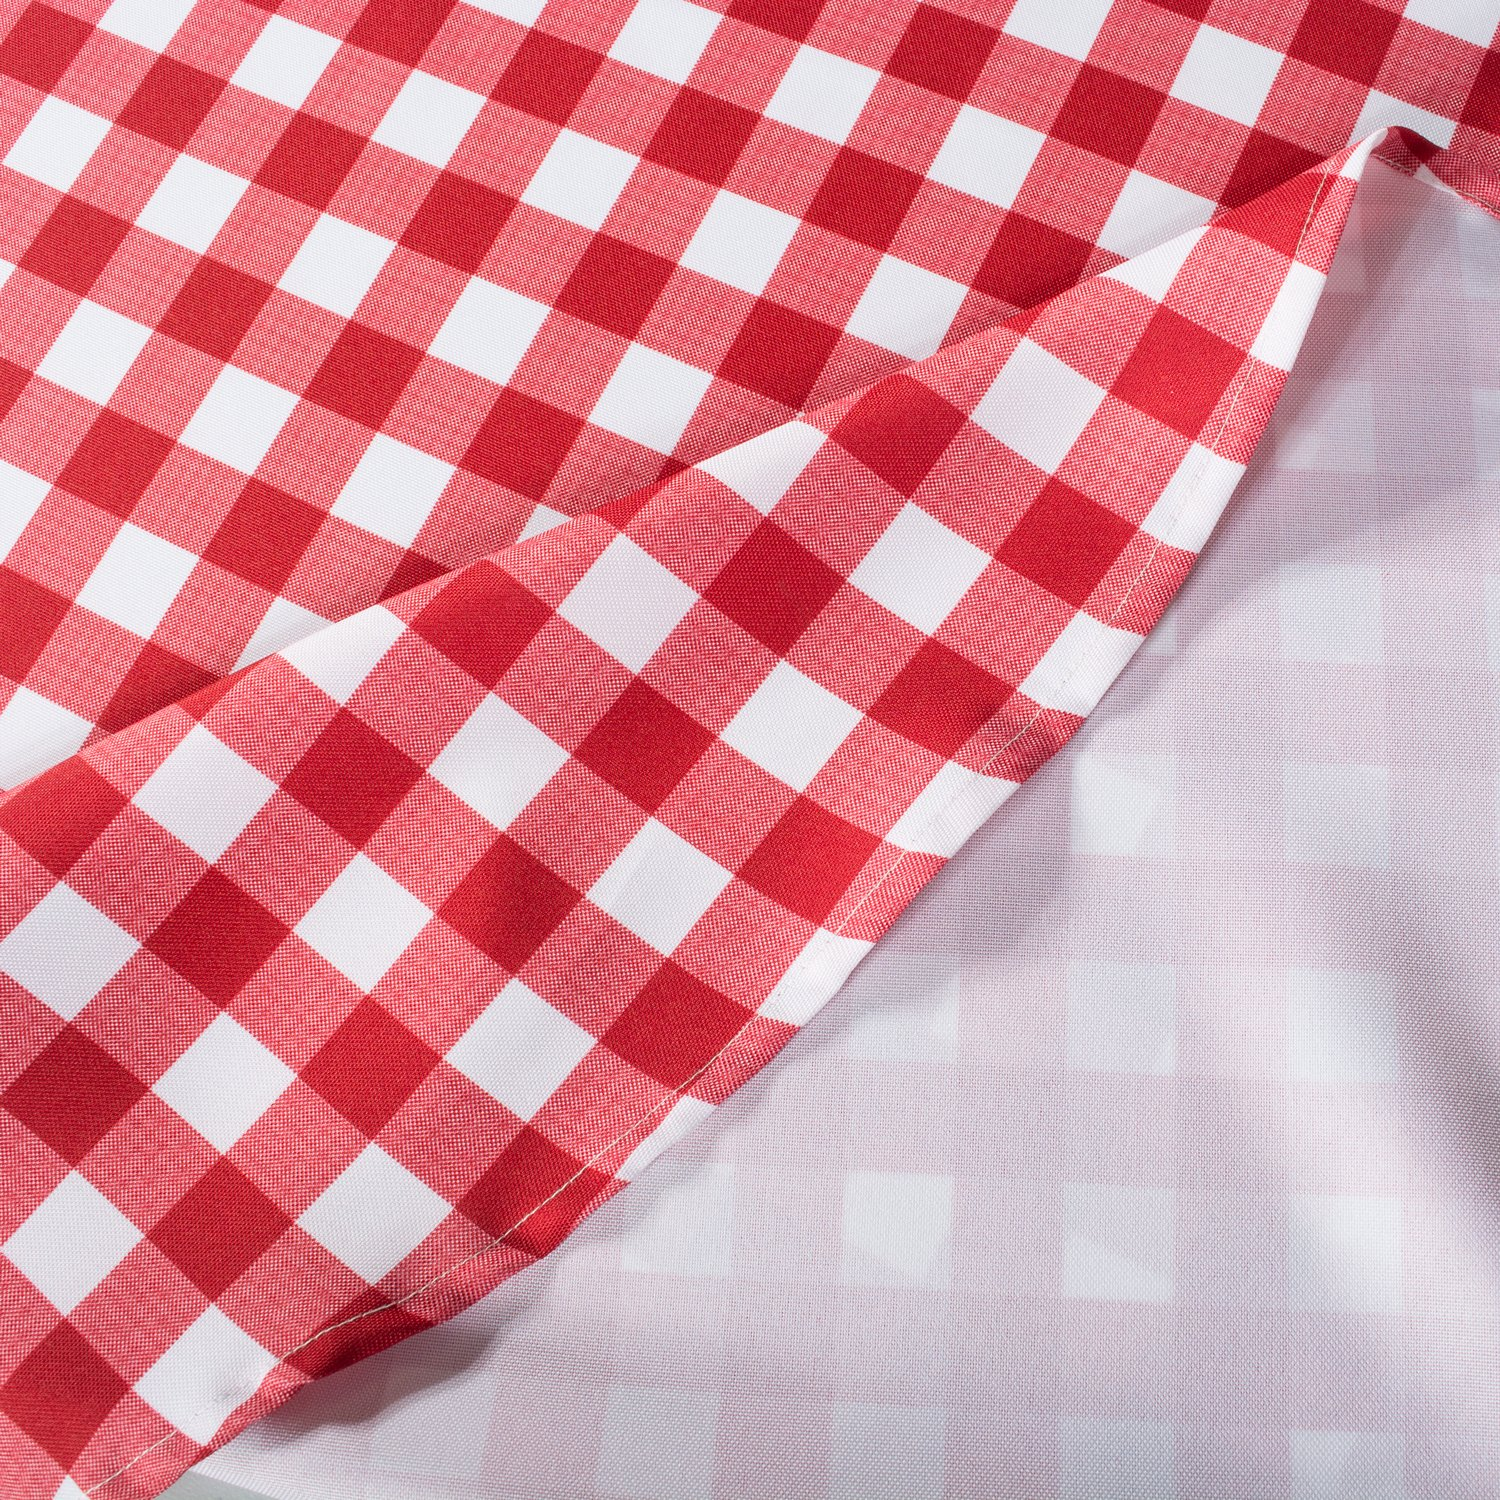 DII Spring & Summer Outdoor Tablecloth, Spill Proof and Waterproof with Zipper and Umbrella Hole, Host Backyard Parties, BBQs, & Family Gatherings - (60x120'' - Seats 10 to 12) Red Check by DII (Image #4)